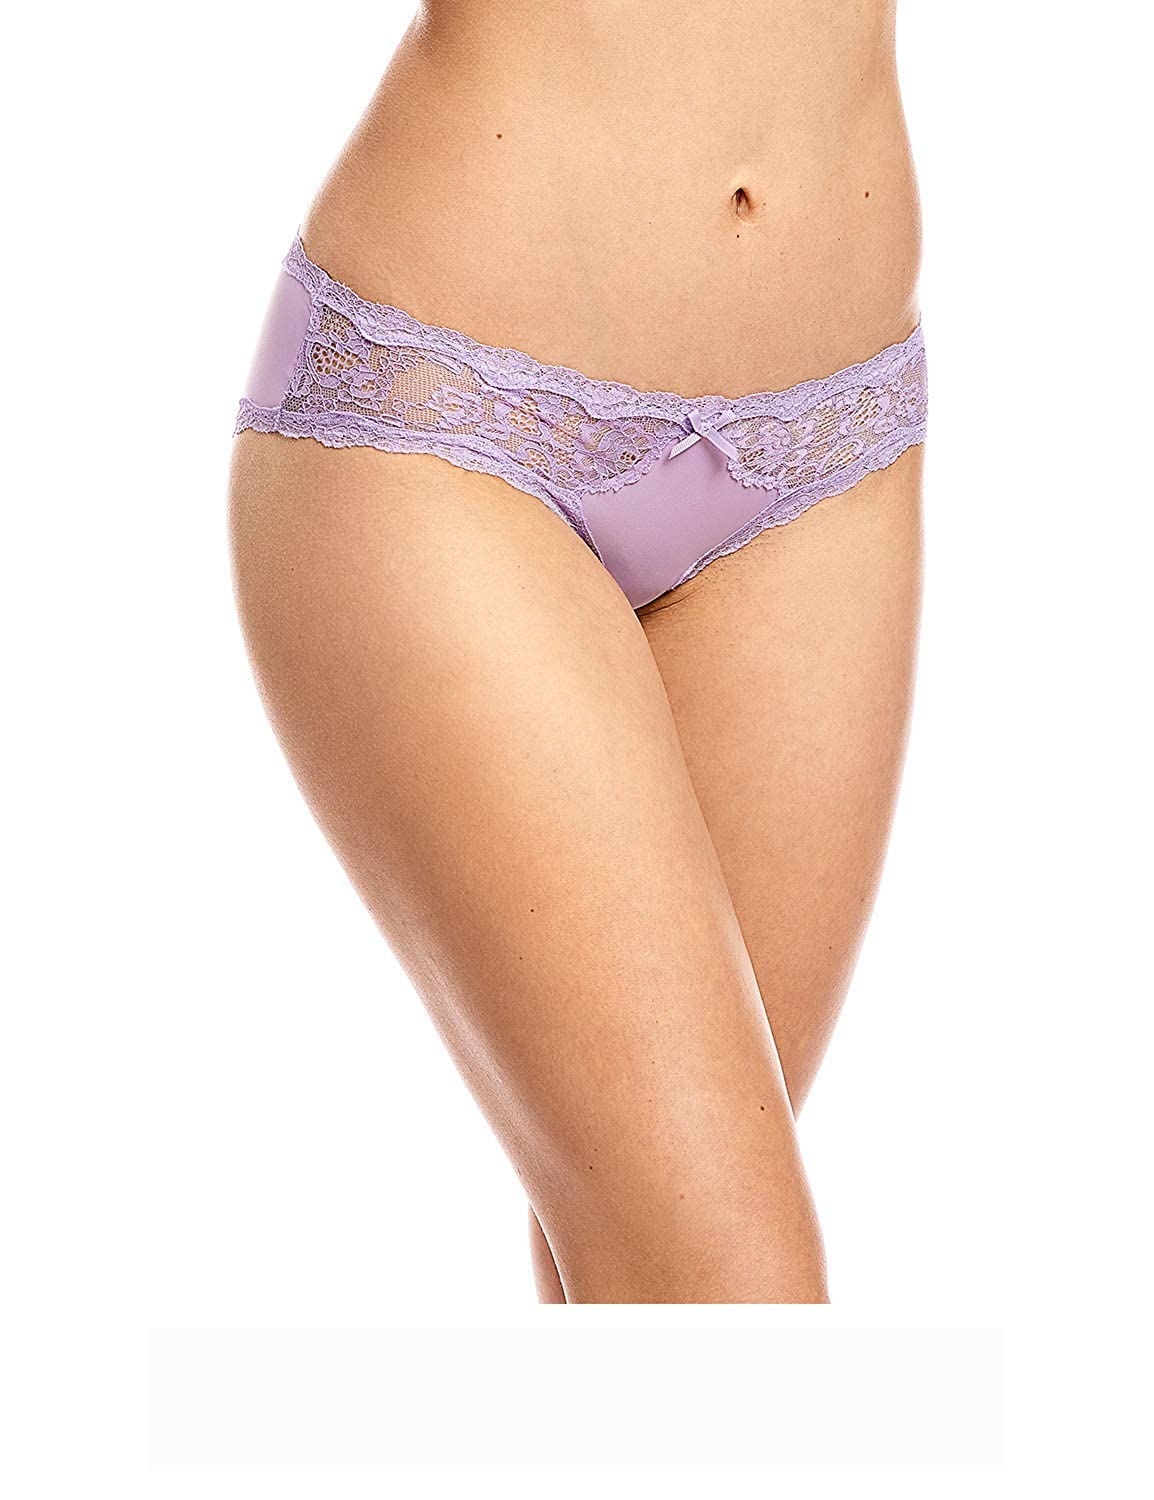 Dobreva Women's 2 Pack Basic Stretchy Lace Bikini Panties Briefs